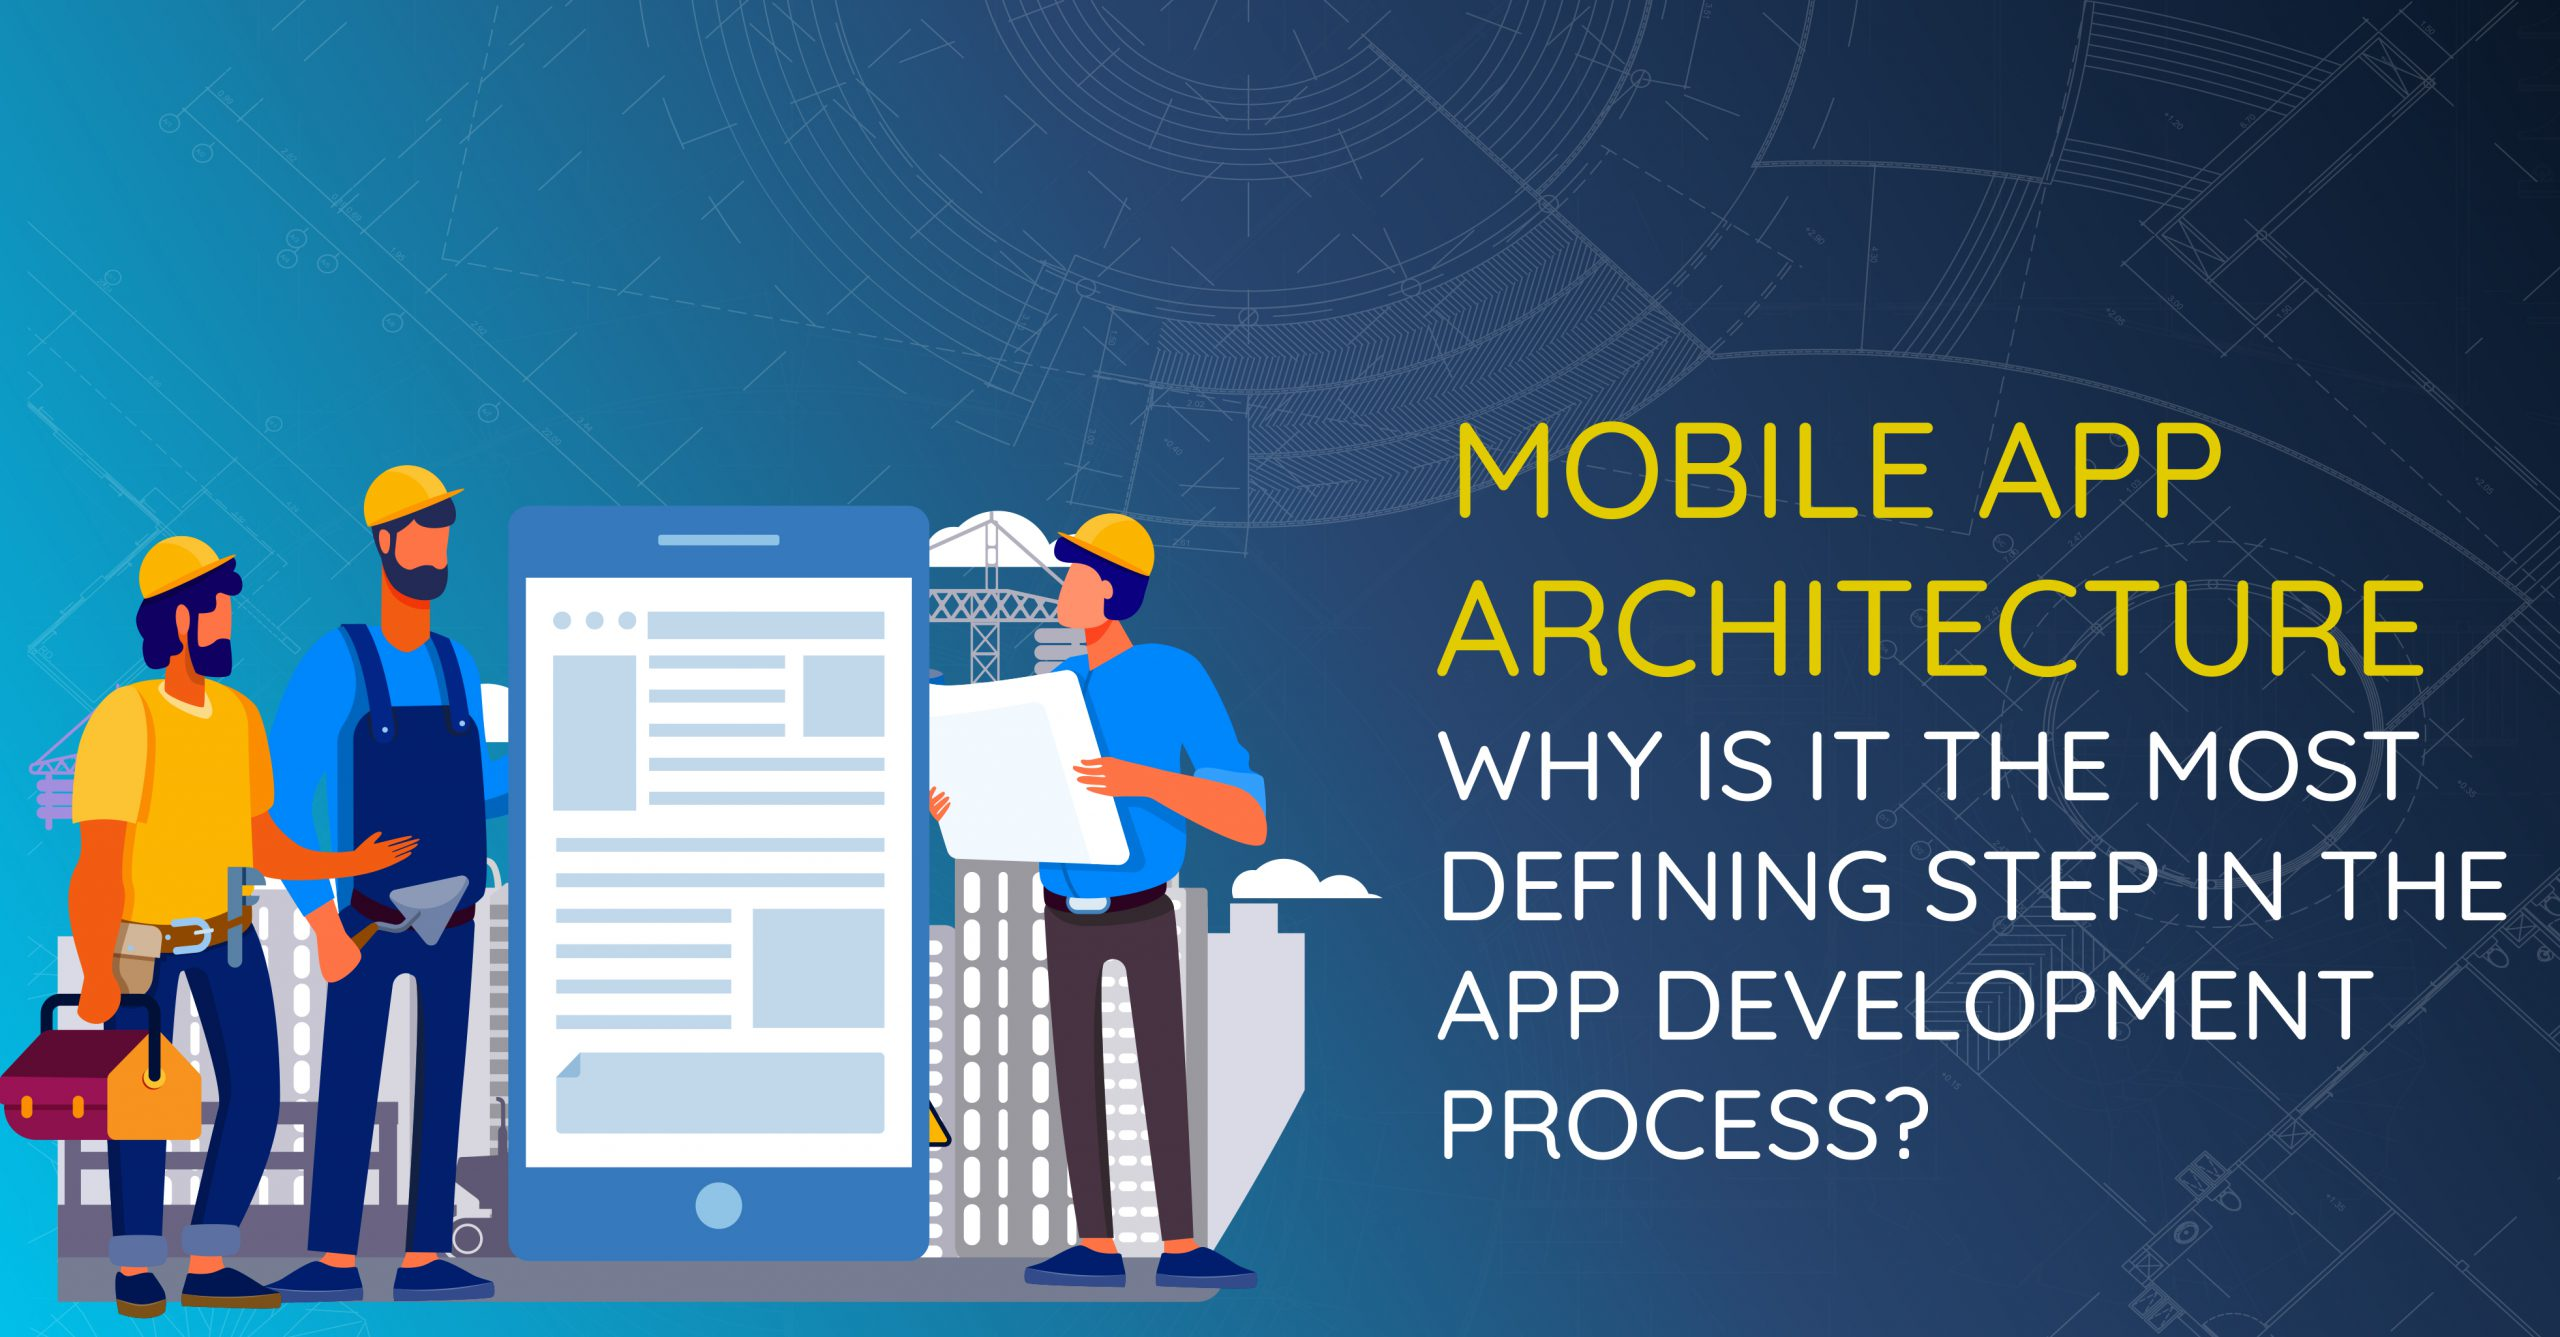 mobile-app-architecture-why-is-it-the-most-defining-step-in-the-app-development-process